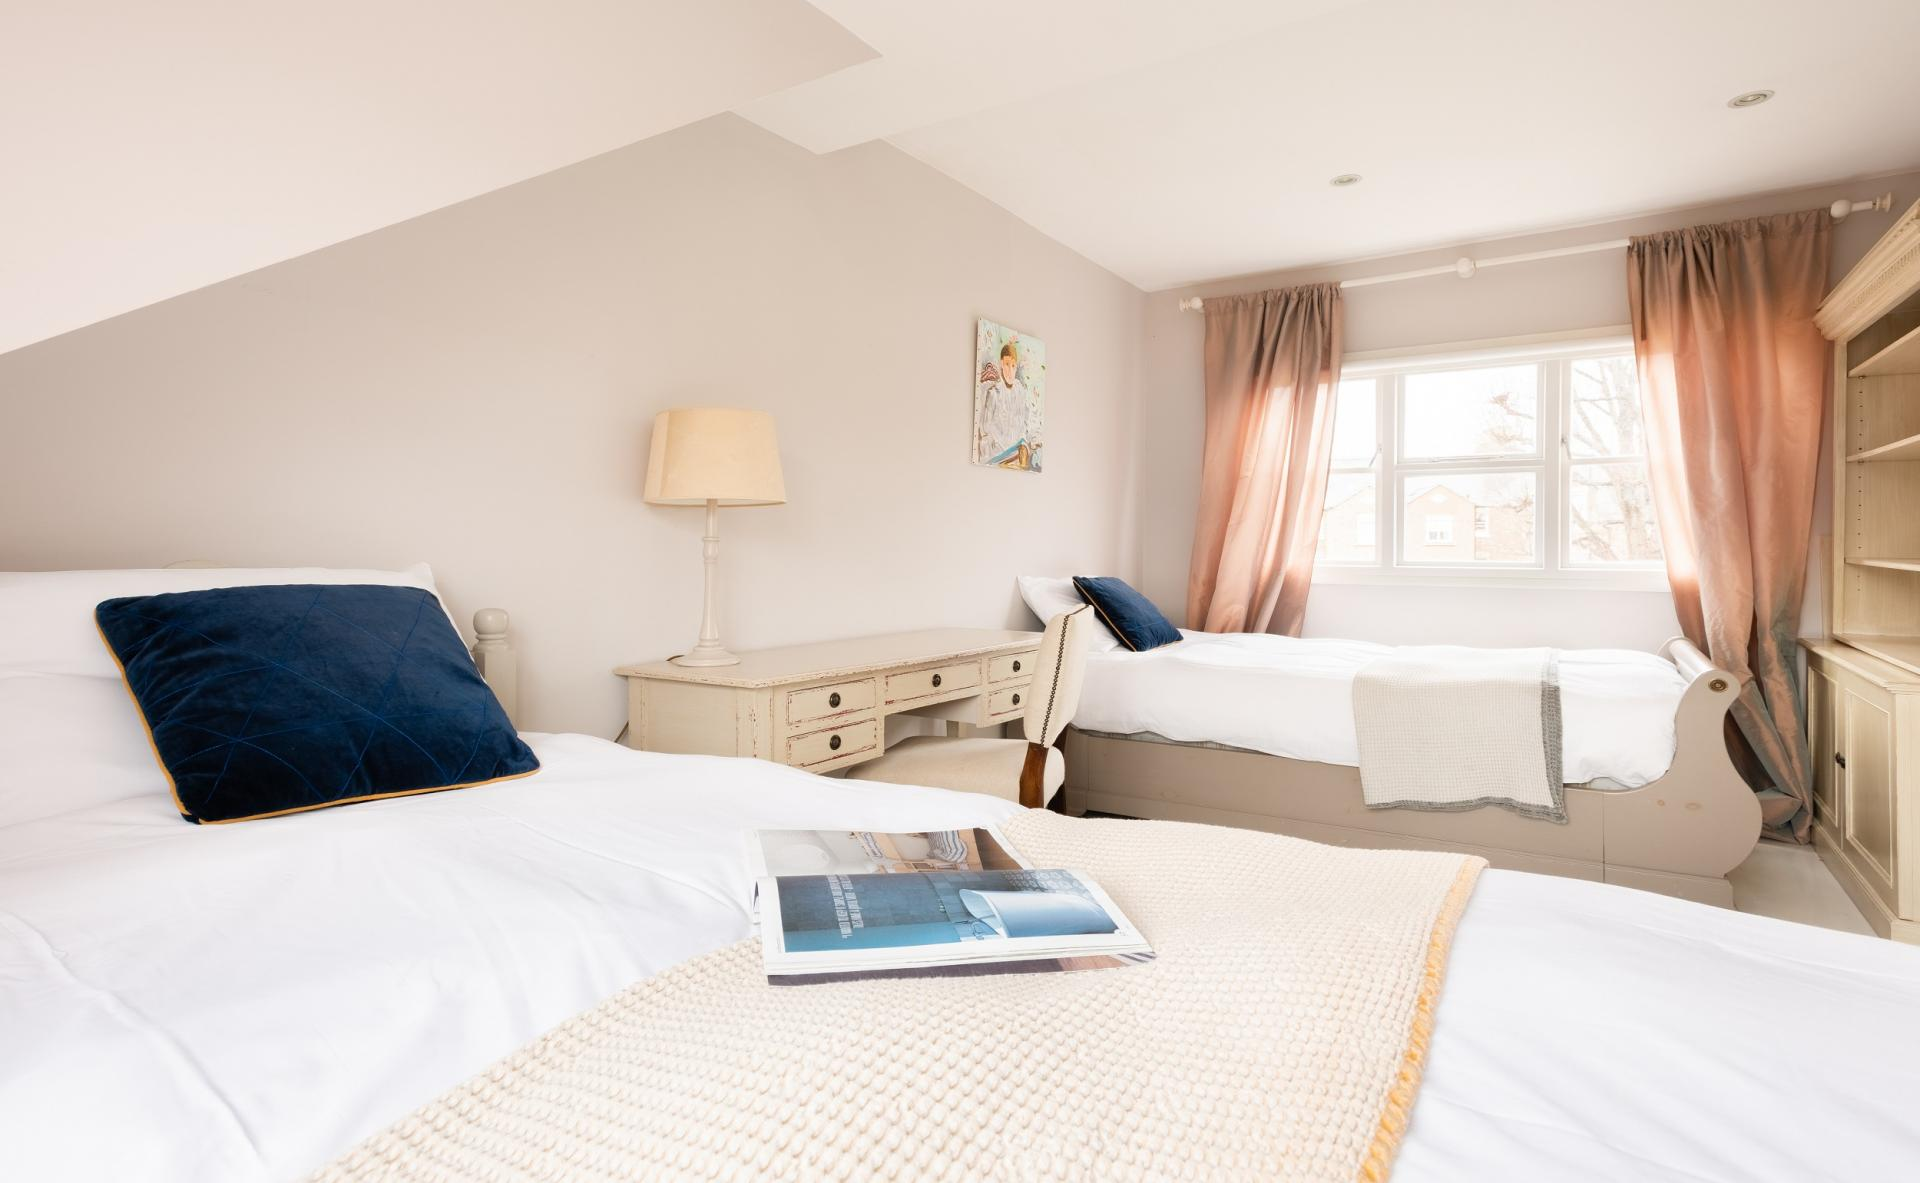 Twin beds at The Writer's Townhouse, Centre, Oxford - Citybase Apartments